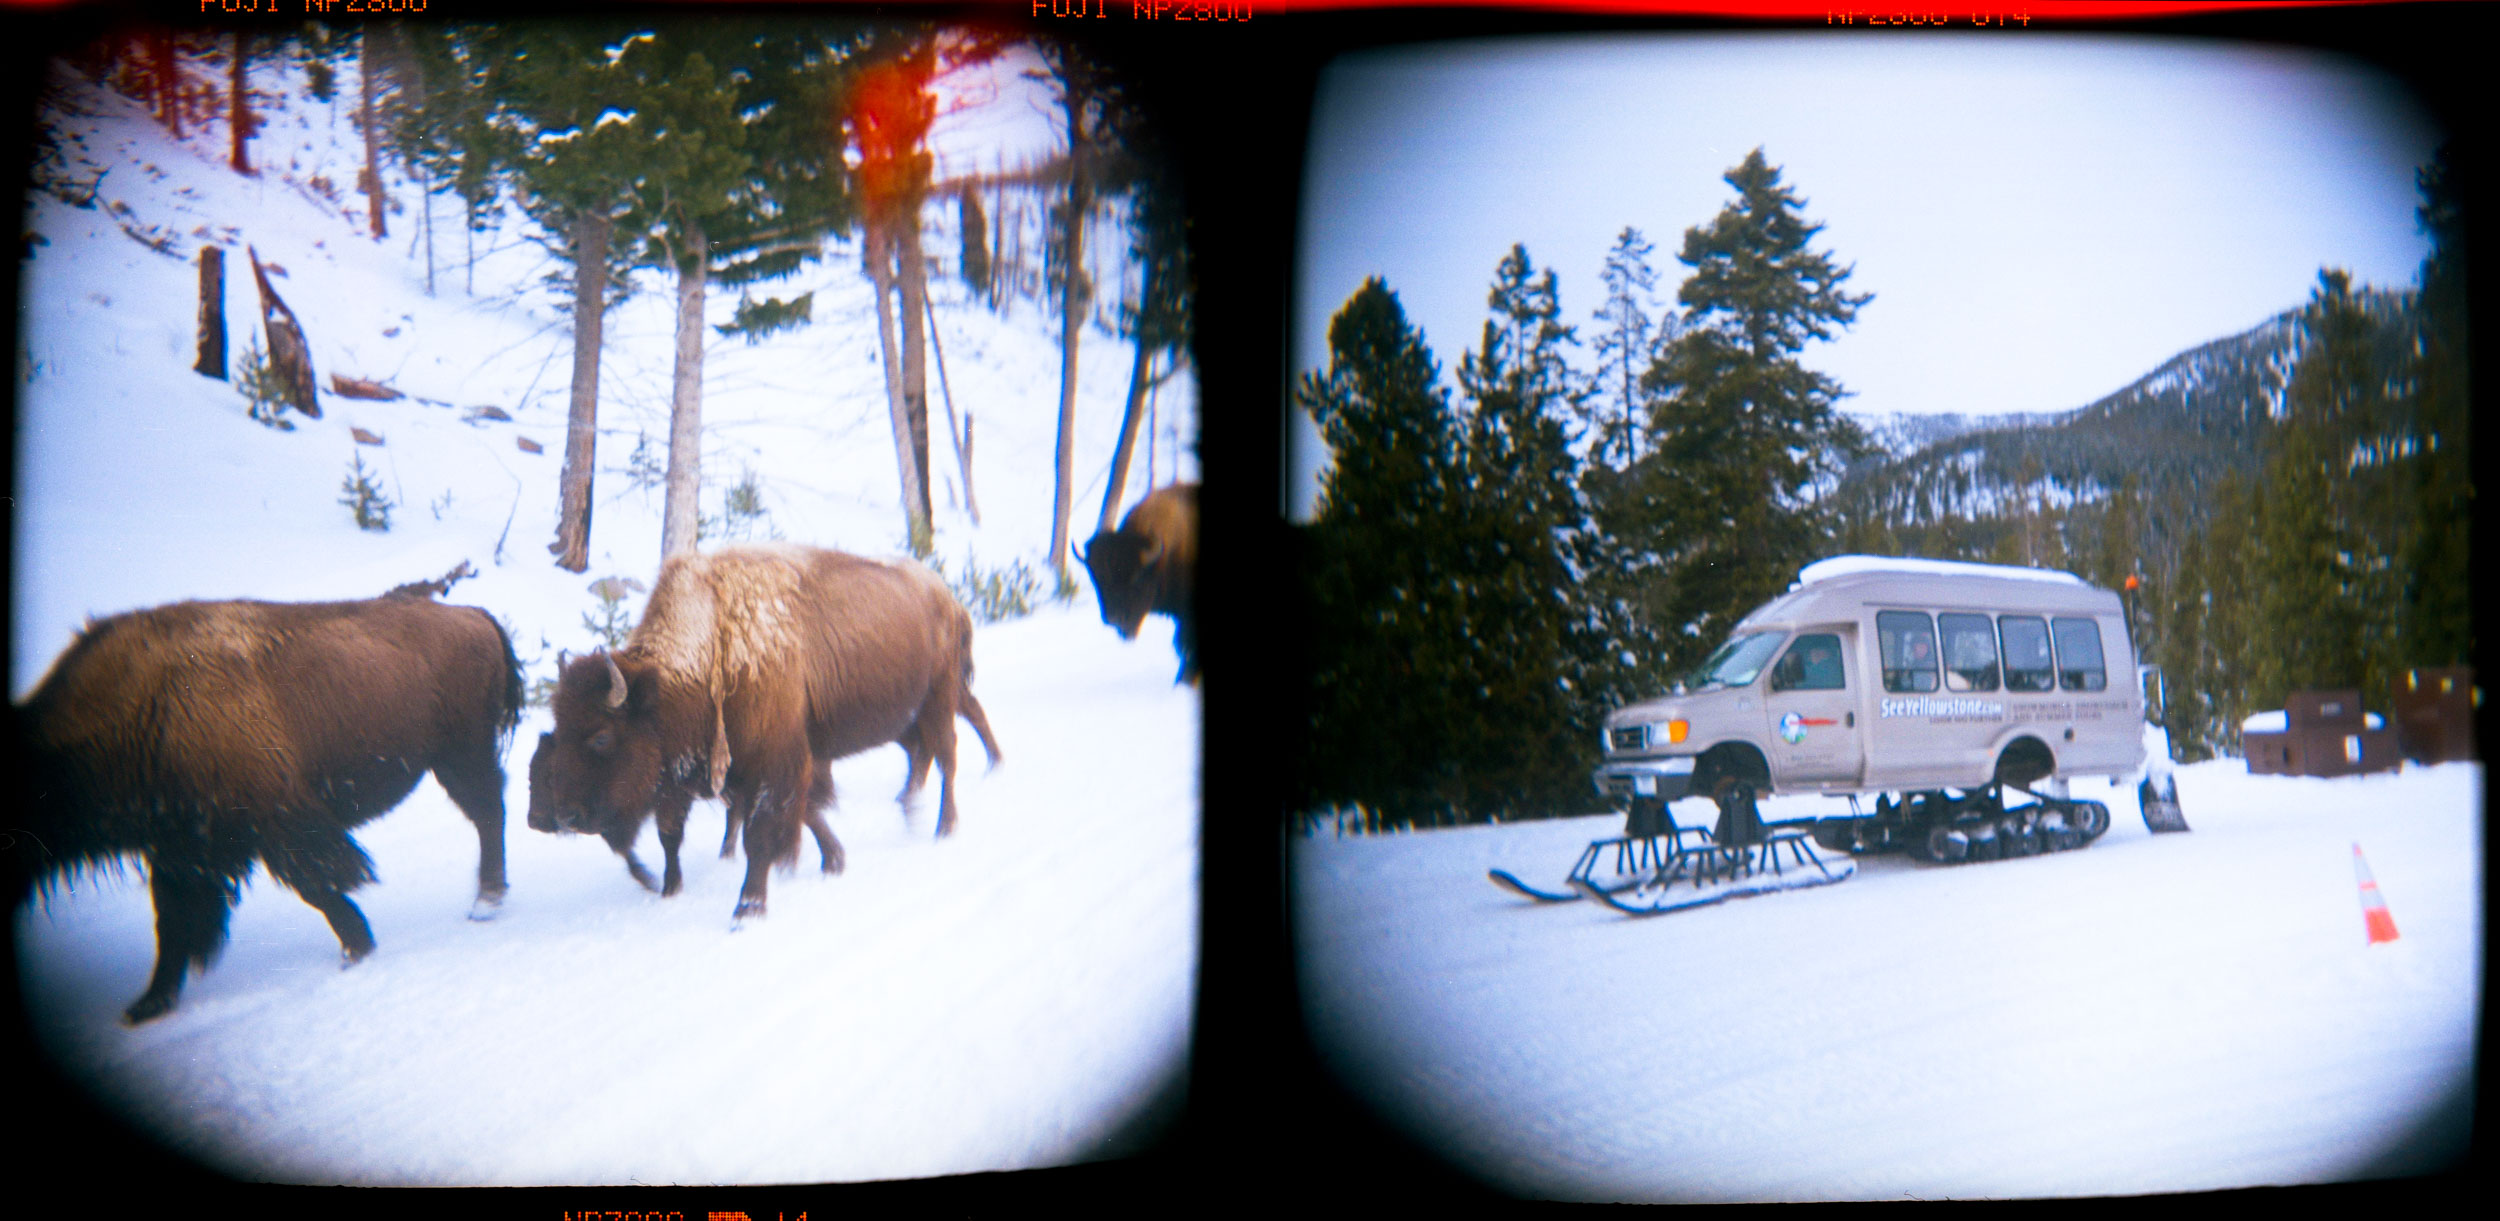 Yellowstone, MT Holga